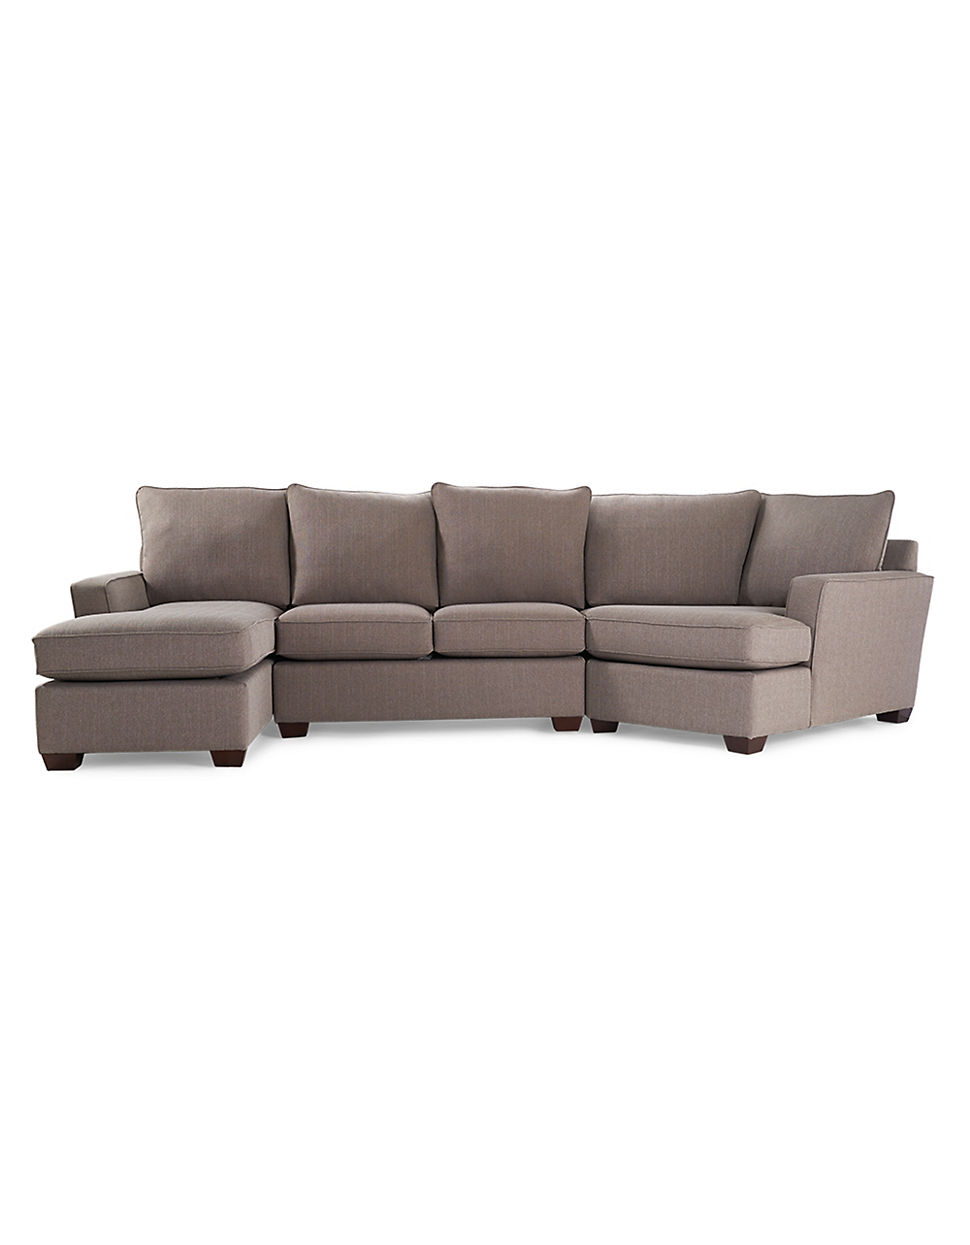 upholstered chairse chaise most released cu furniture double sectional sofas ideas regarding of recently